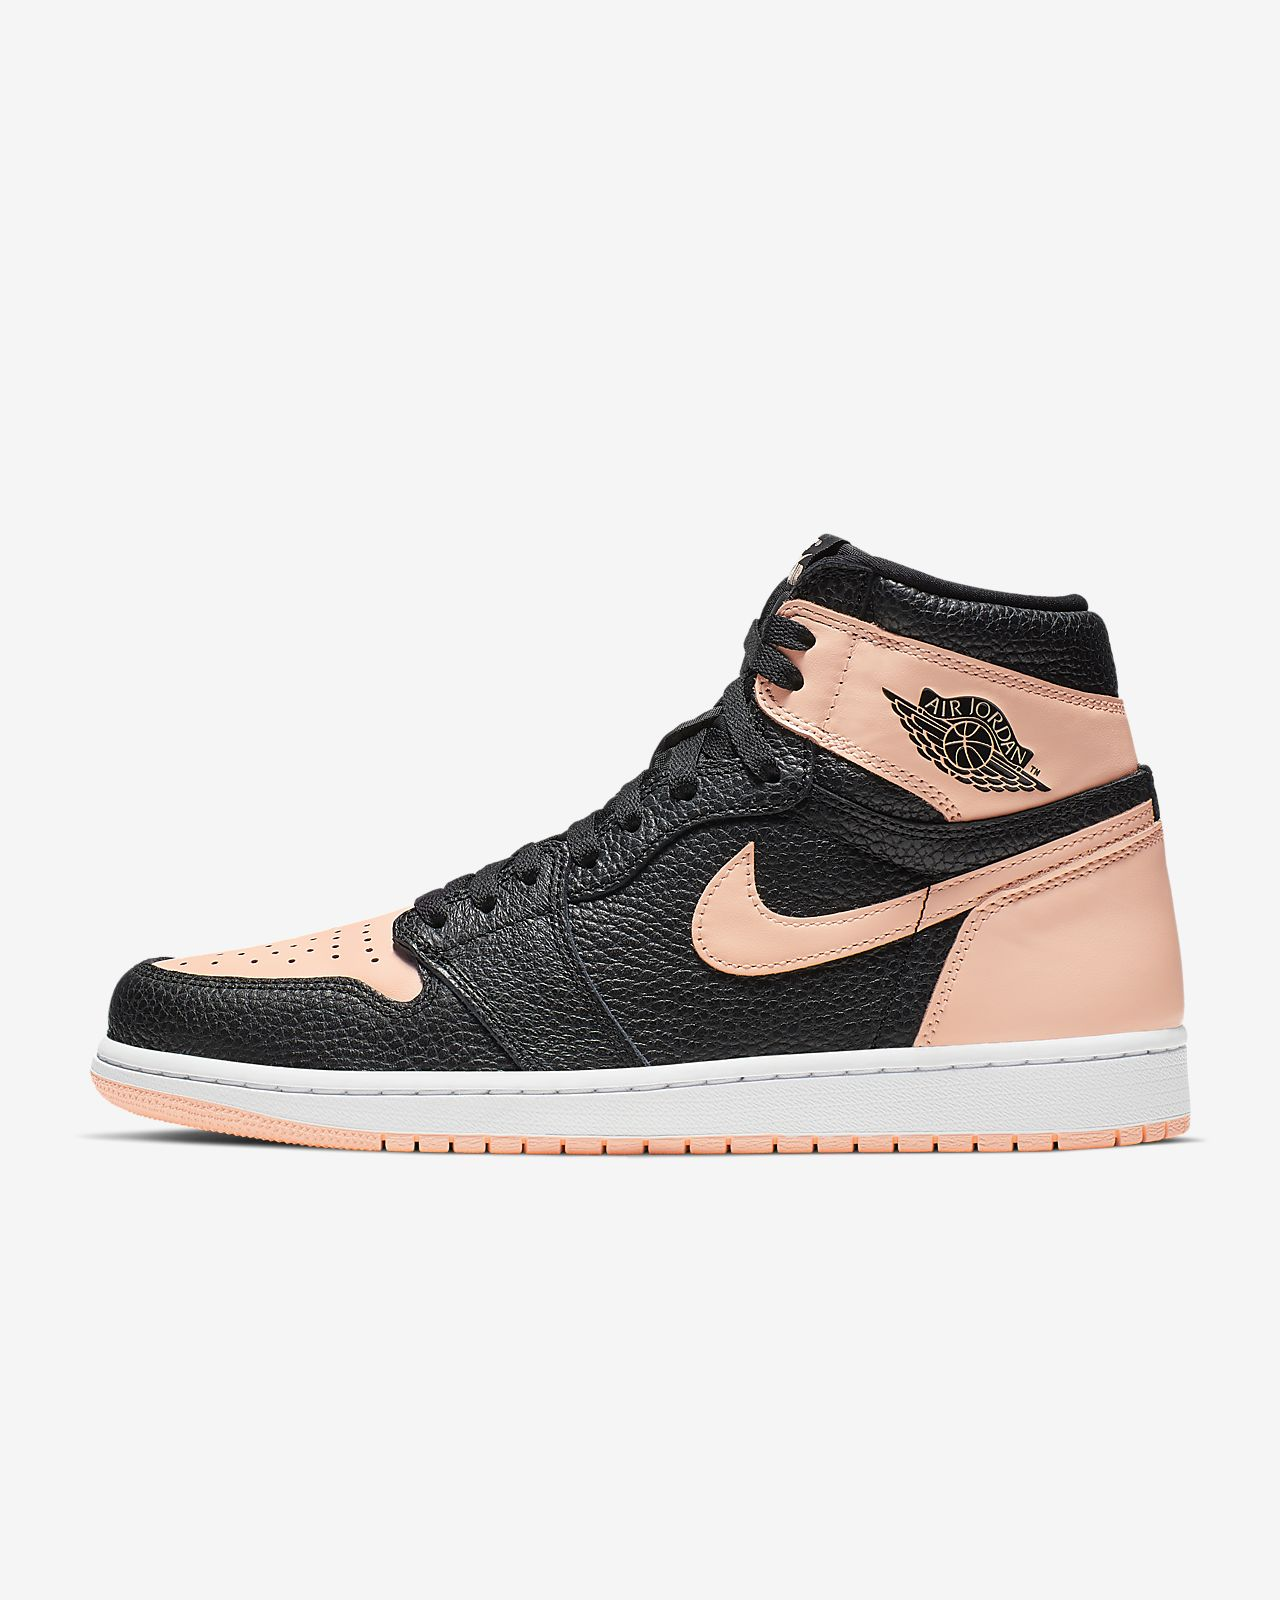 1b20cc21a902c9 Air Jordan 1 Retro High OG Shoe. Nike.com